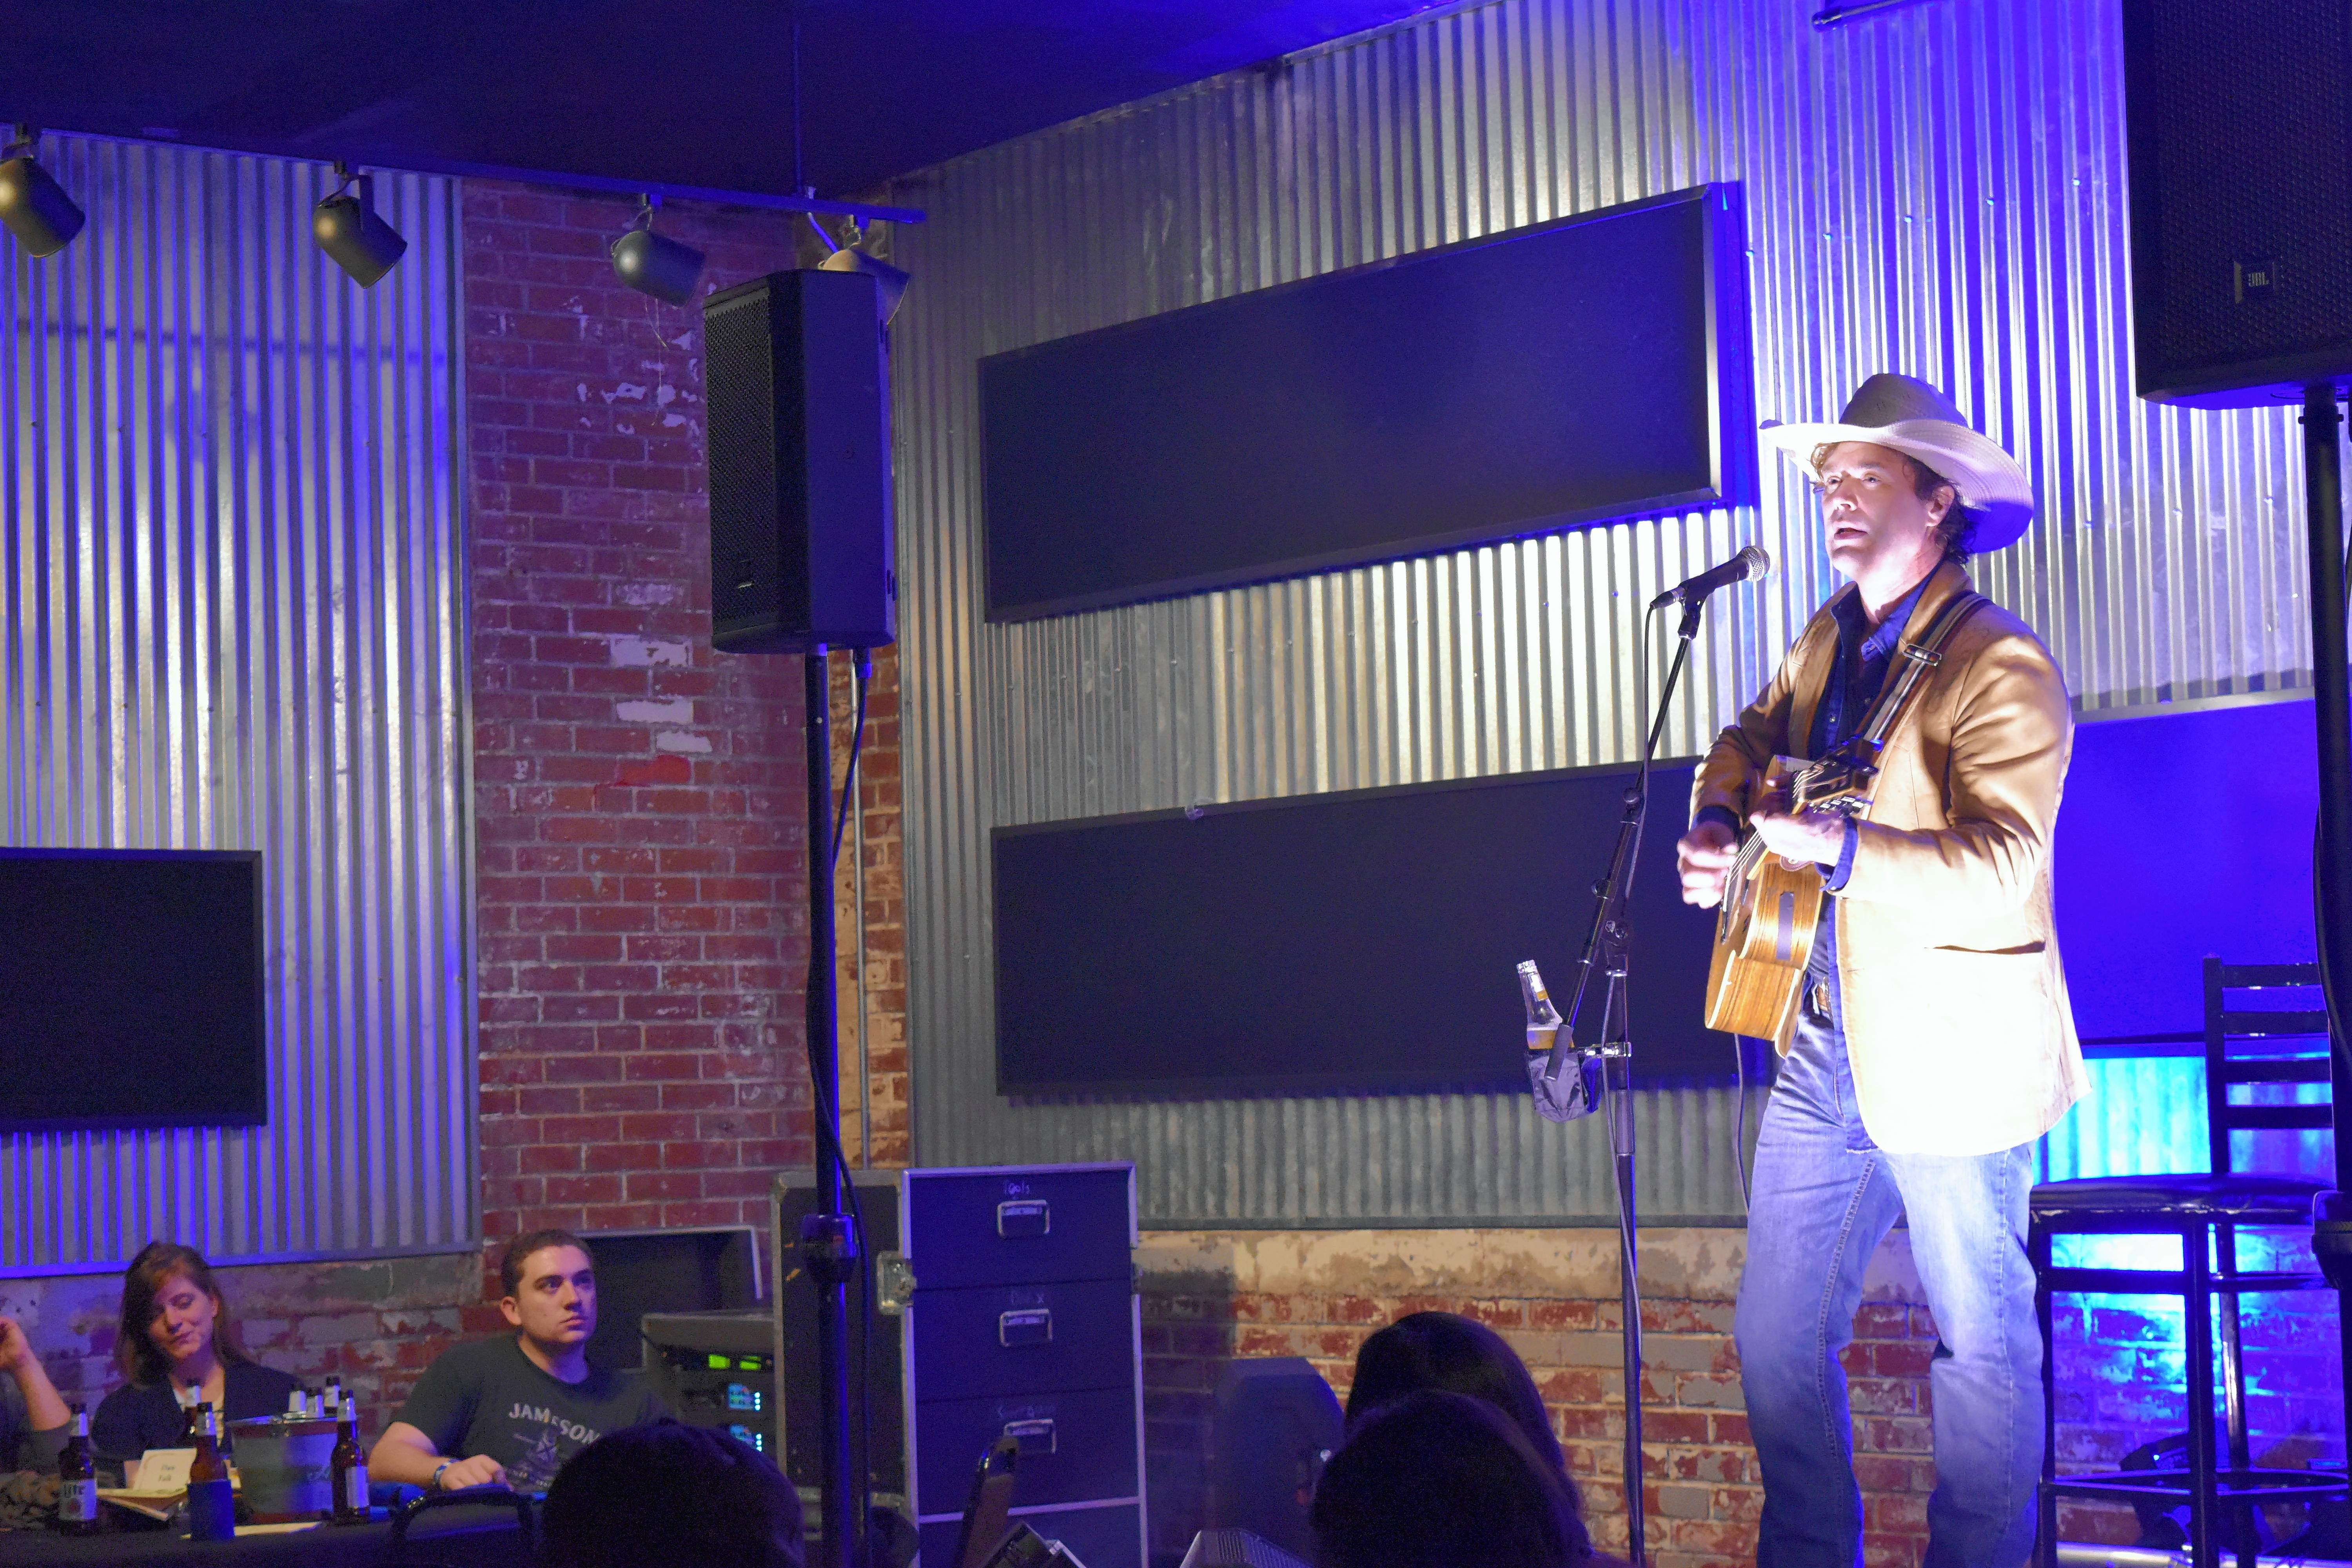 Canadian musician Corb Lund plays to a sold-out crowd in the banquet room at Morello's in Harrisburg Saturday night.